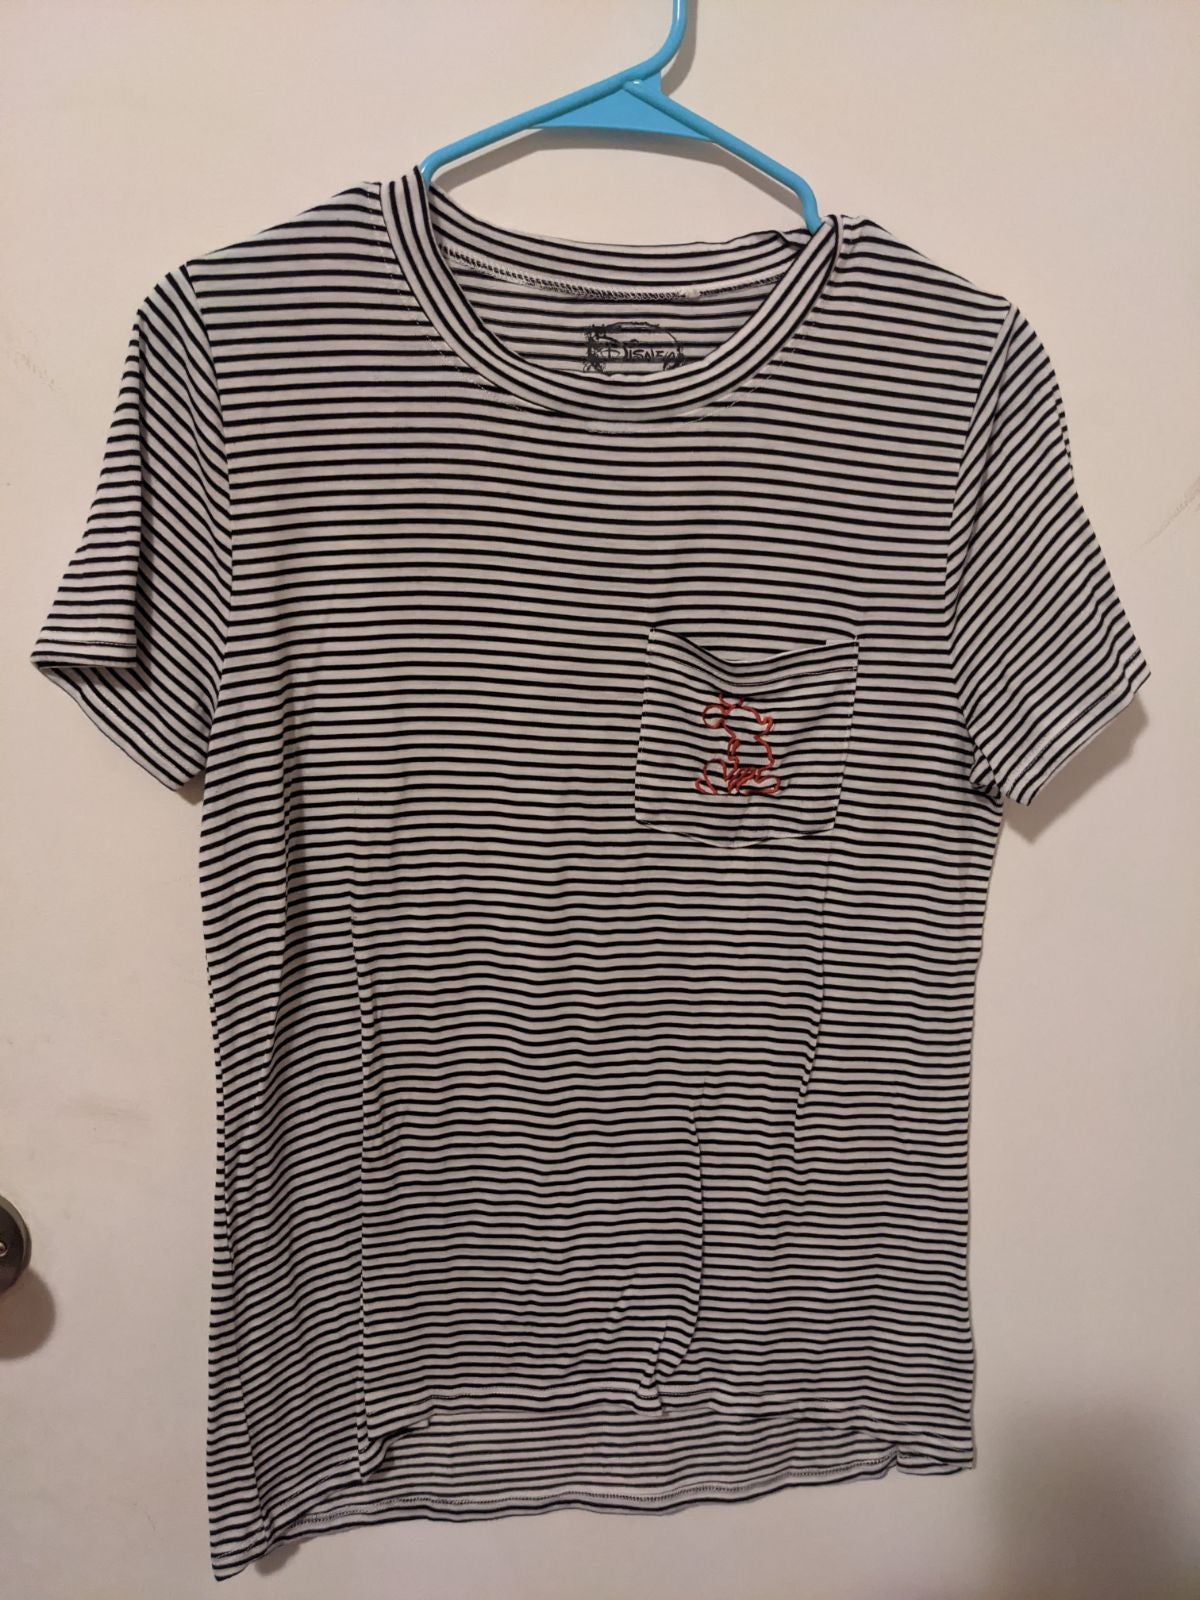 Embroidered Pocket Mickey Mouse Shirt